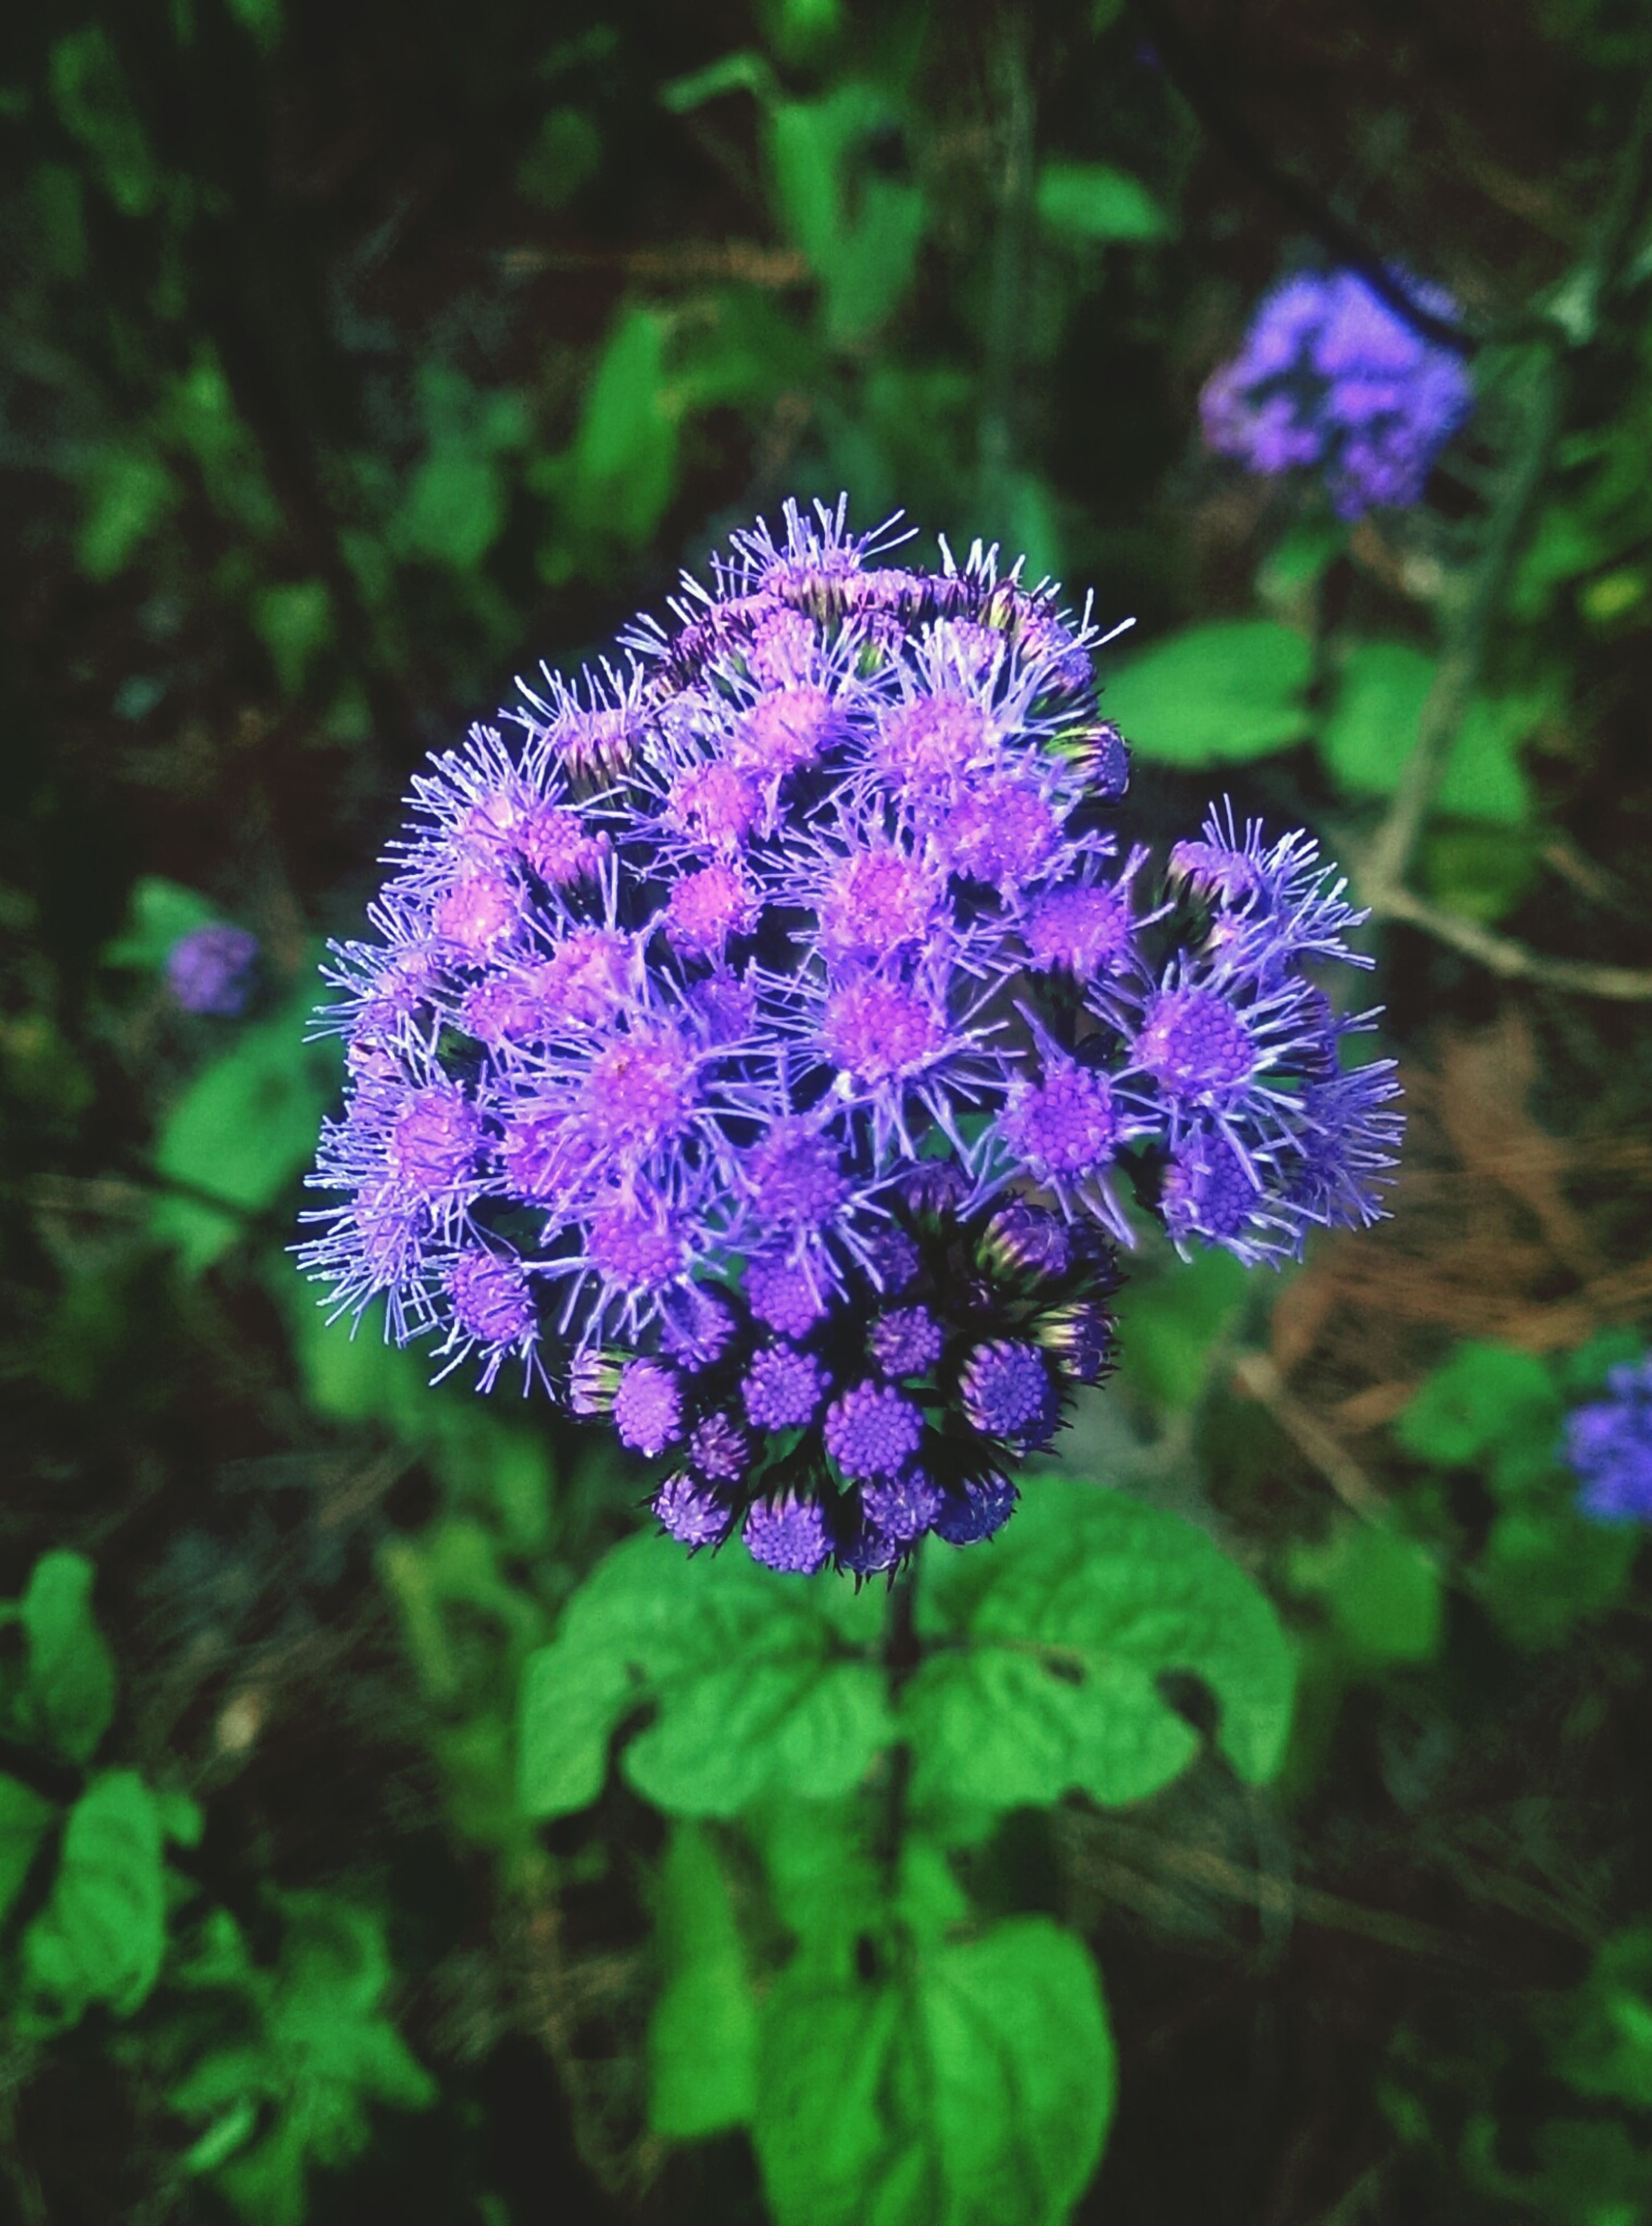 flower, freshness, purple, fragility, growth, beauty in nature, close-up, focus on foreground, petal, flower head, plant, nature, blooming, one animal, in bloom, insect, outdoors, animal themes, day, no people